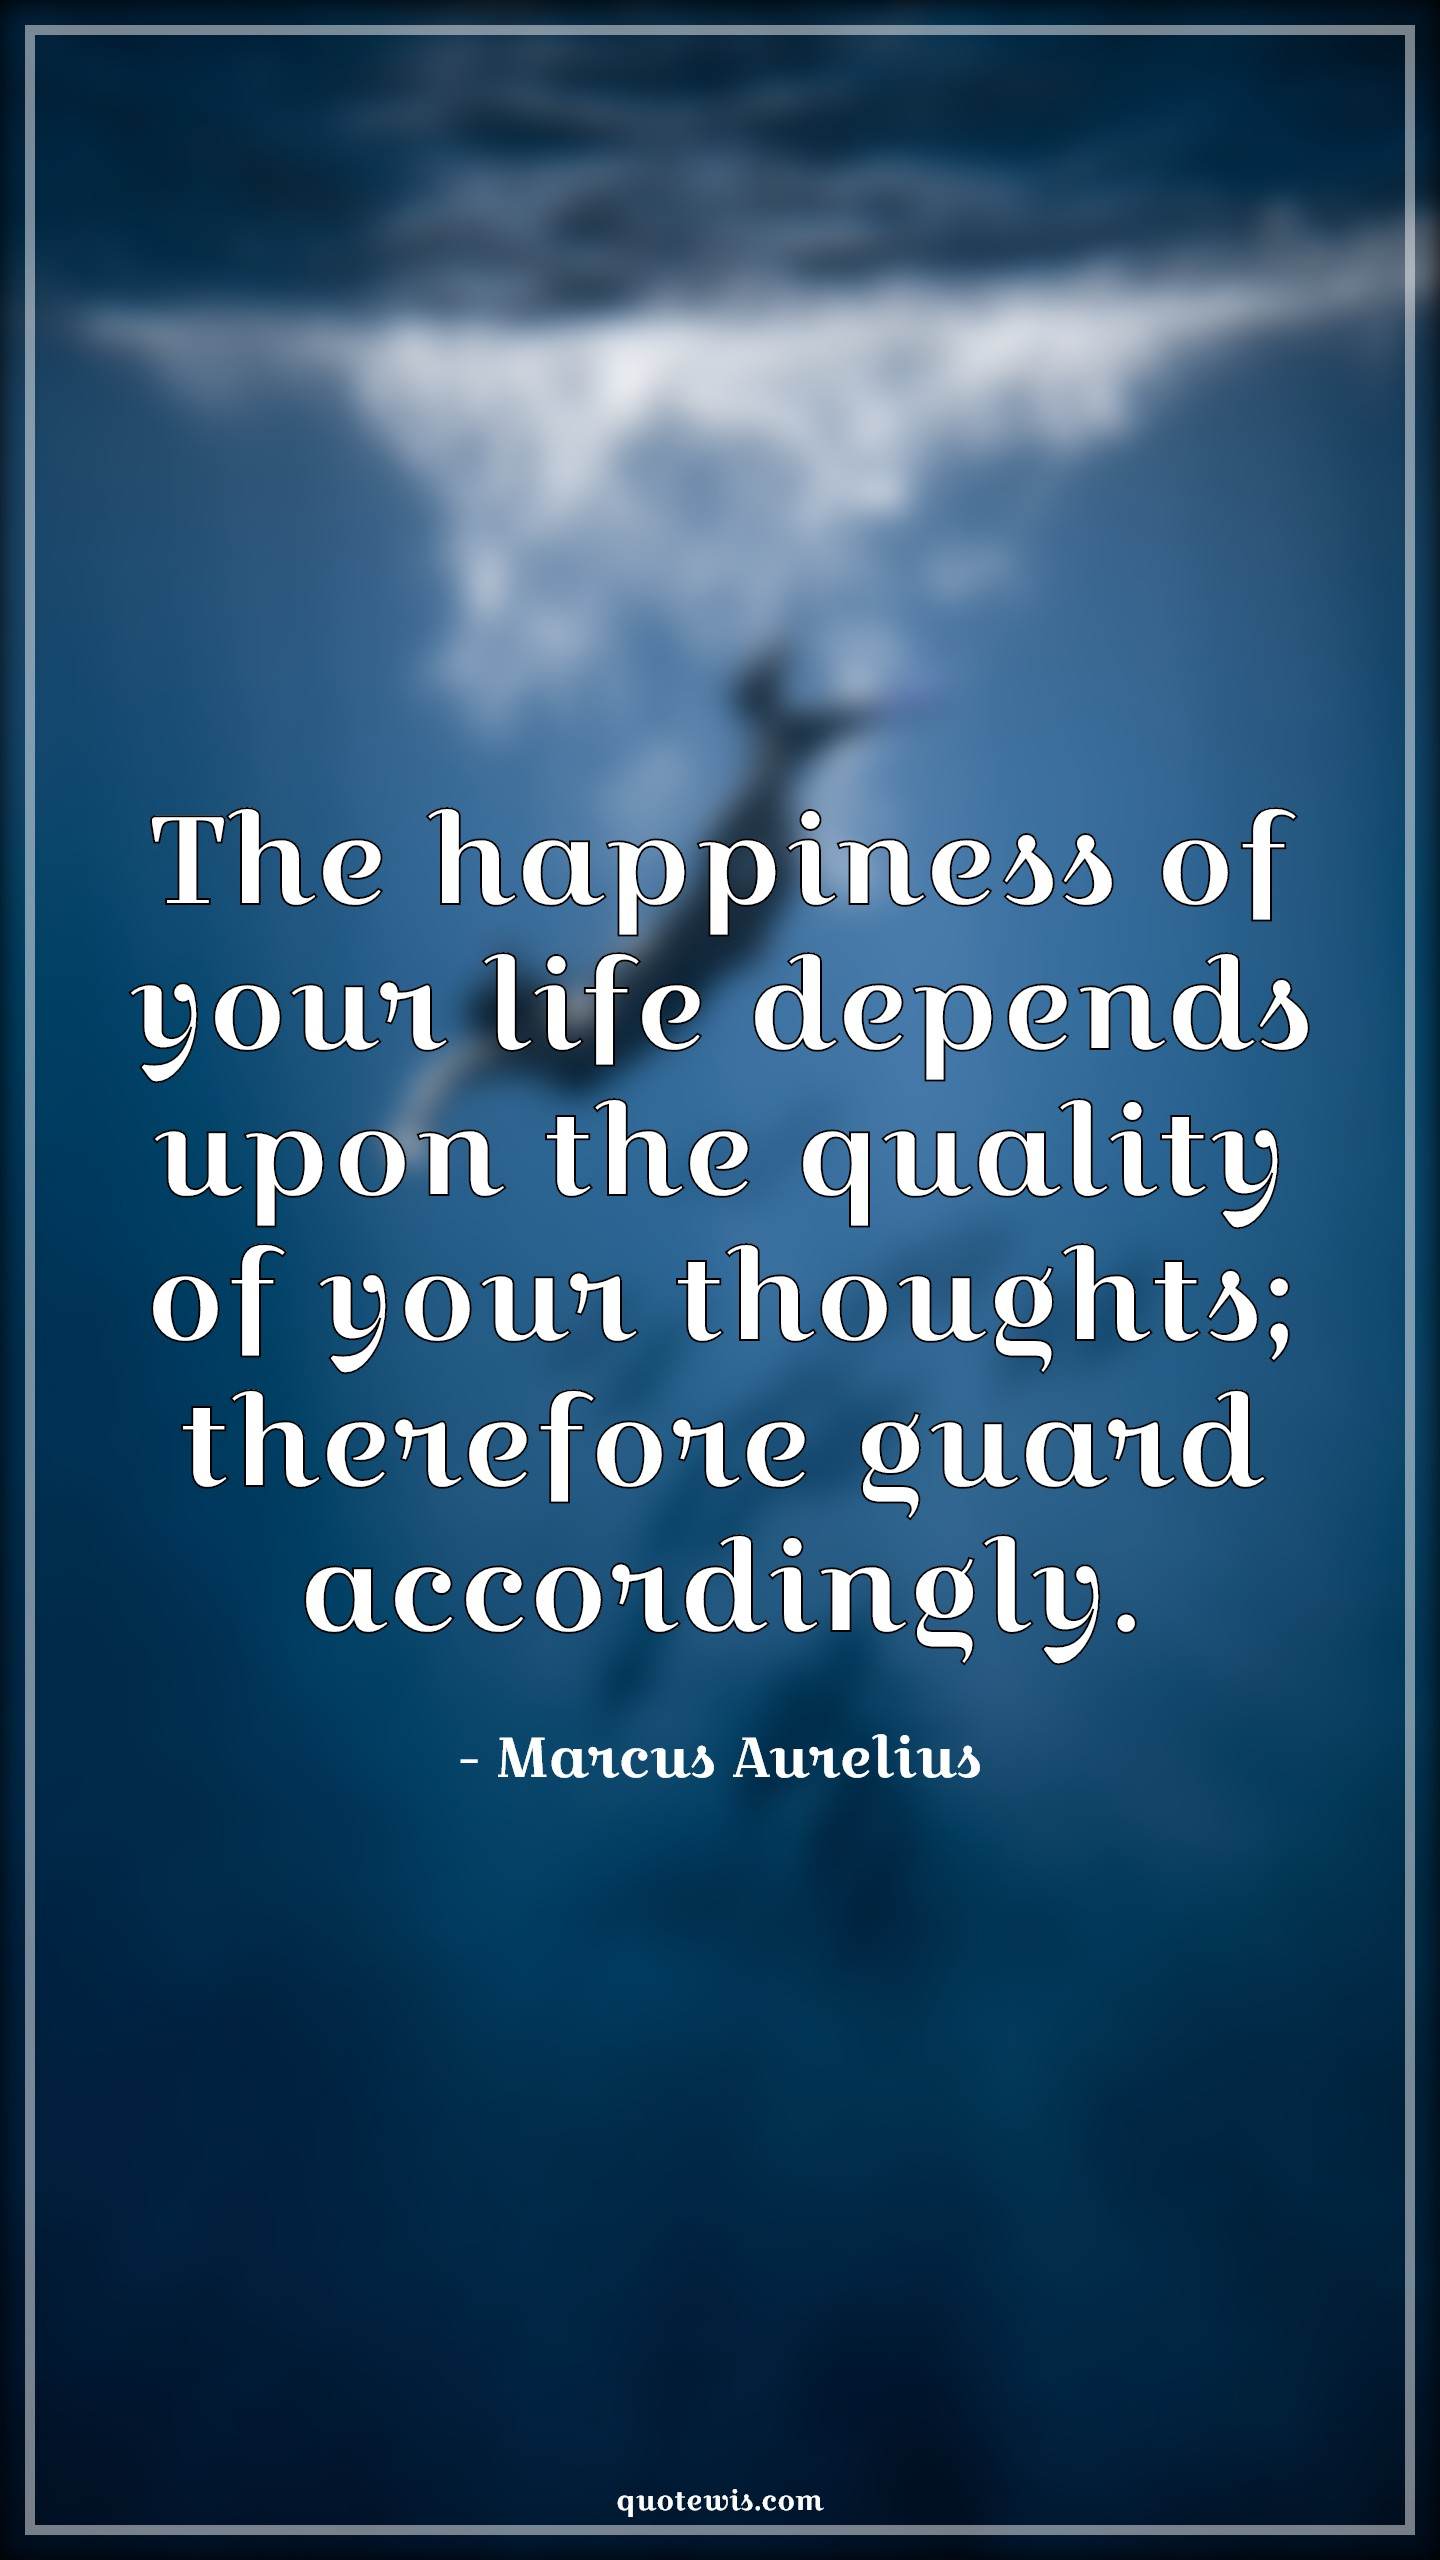 The happiness of your life depends upon the quality of your thoughts; therefore guard accordingly.